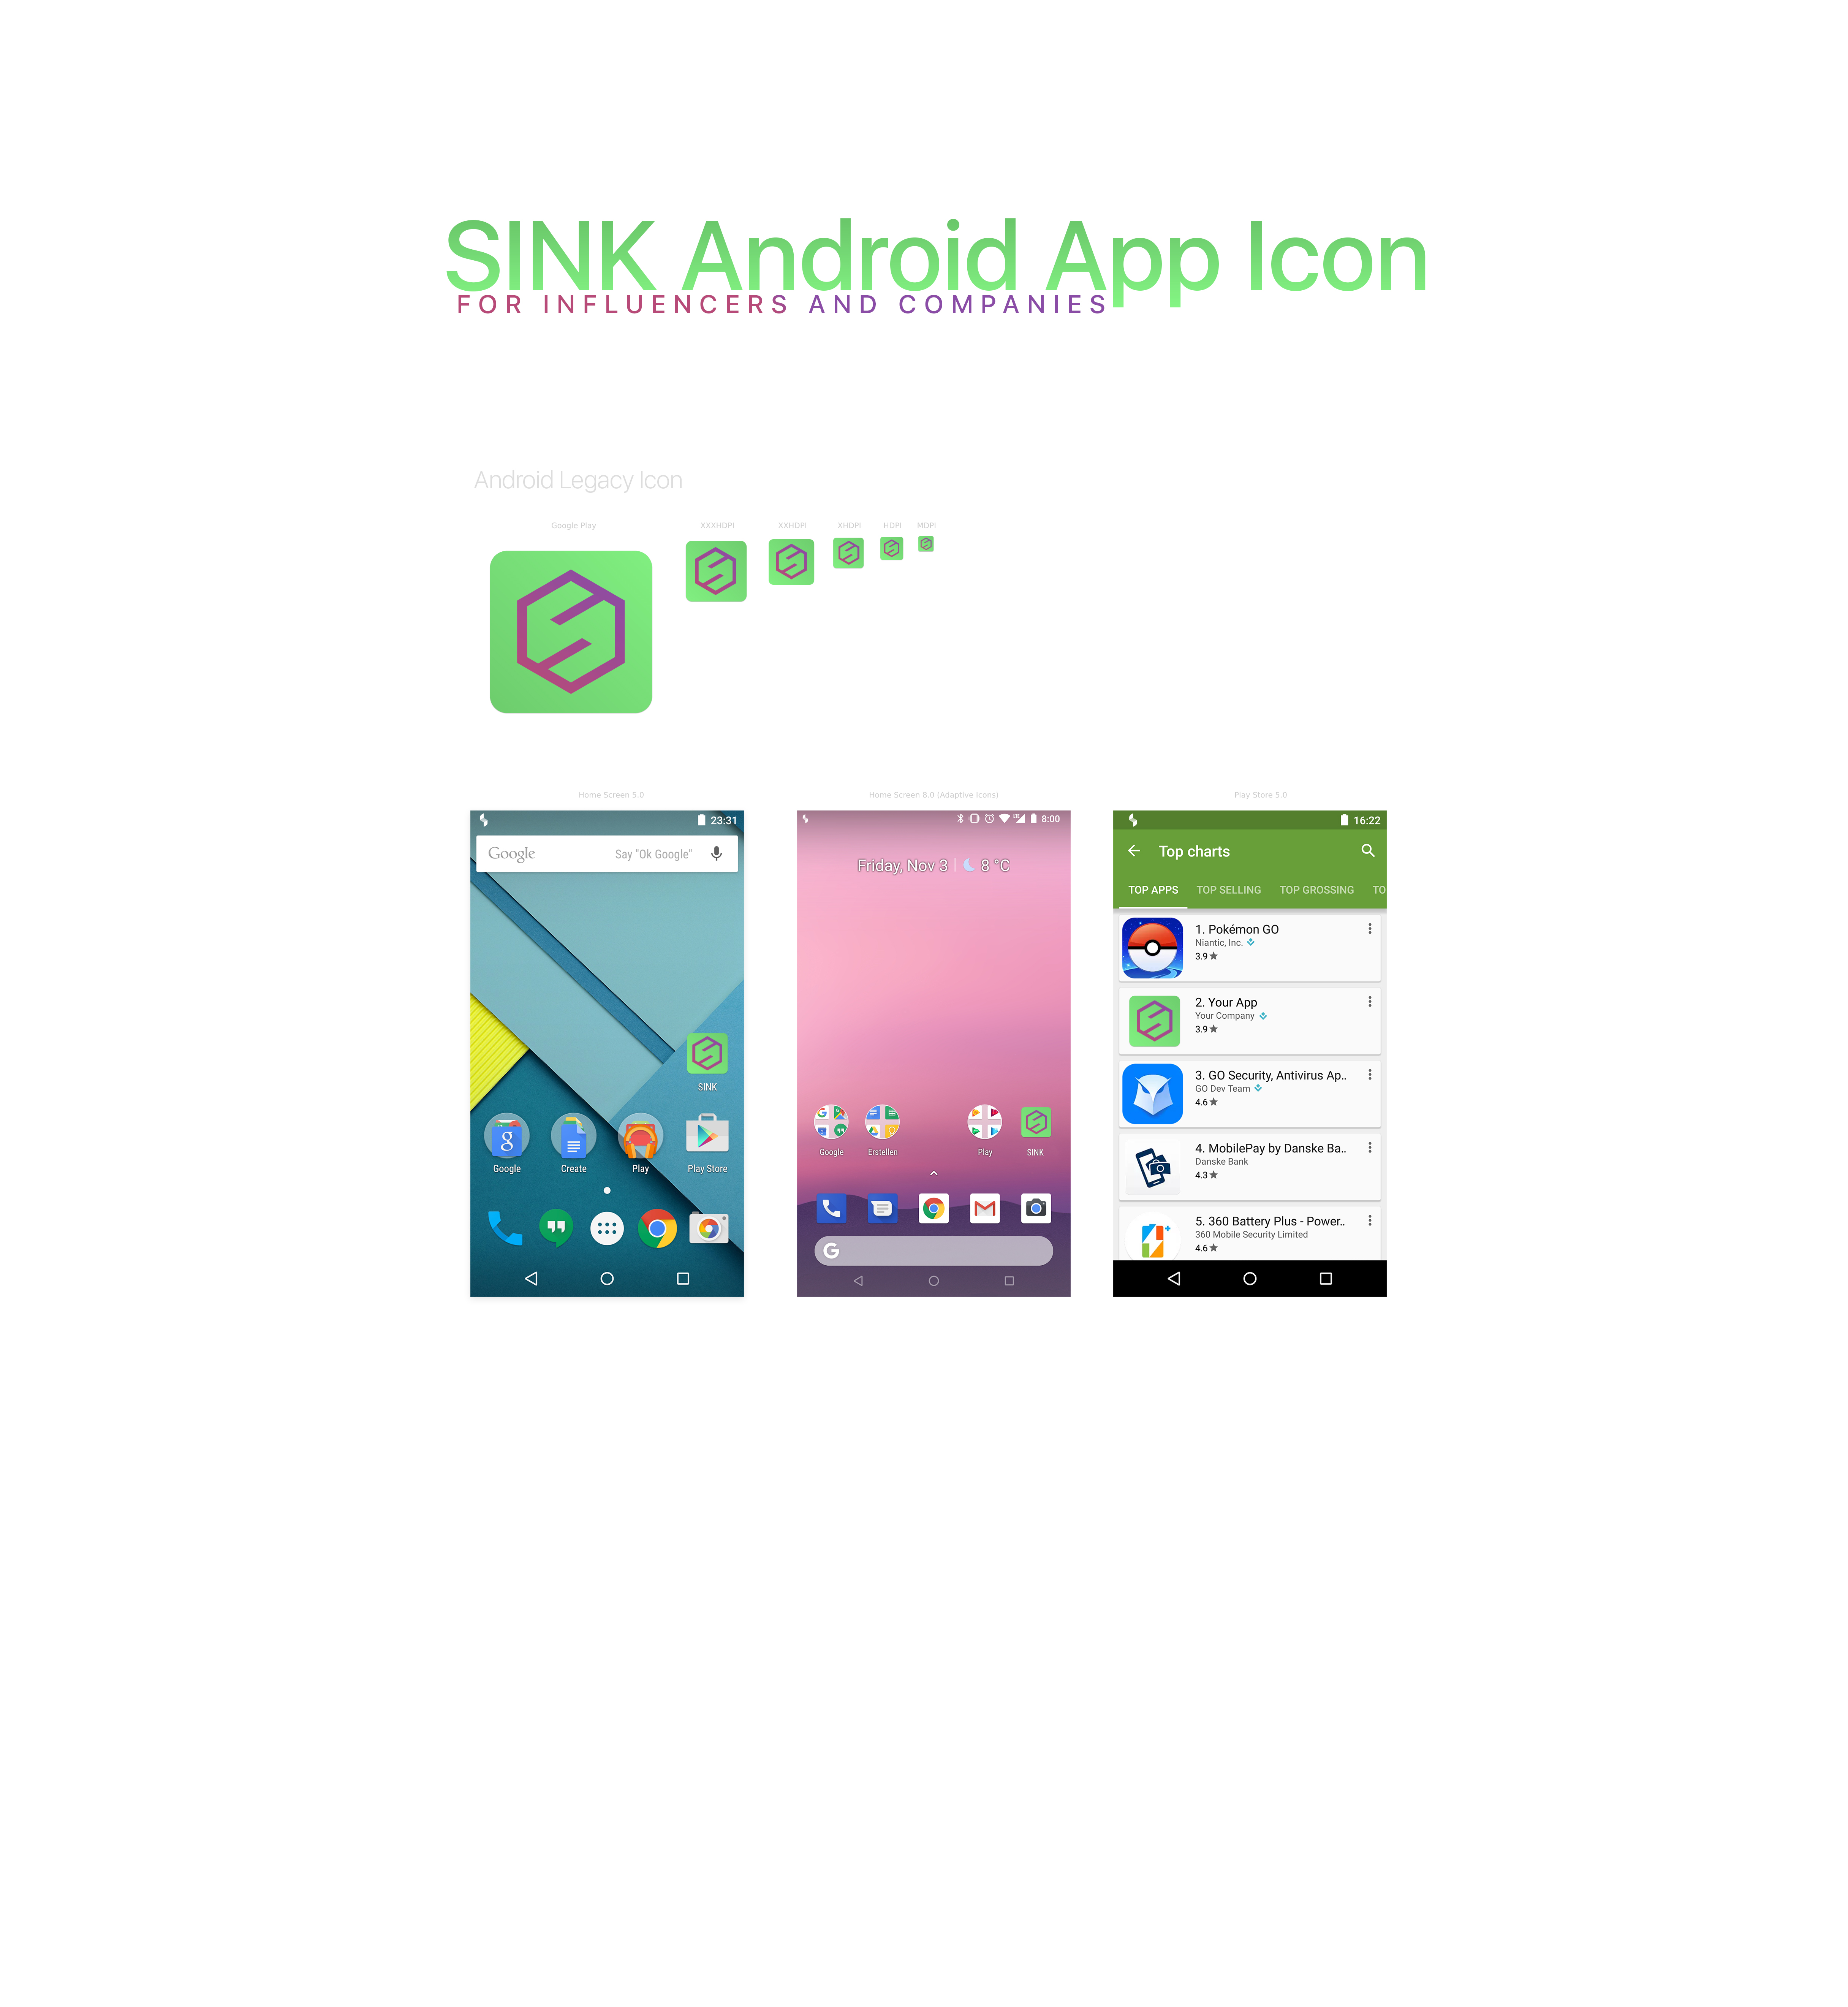 android_icon.jpg